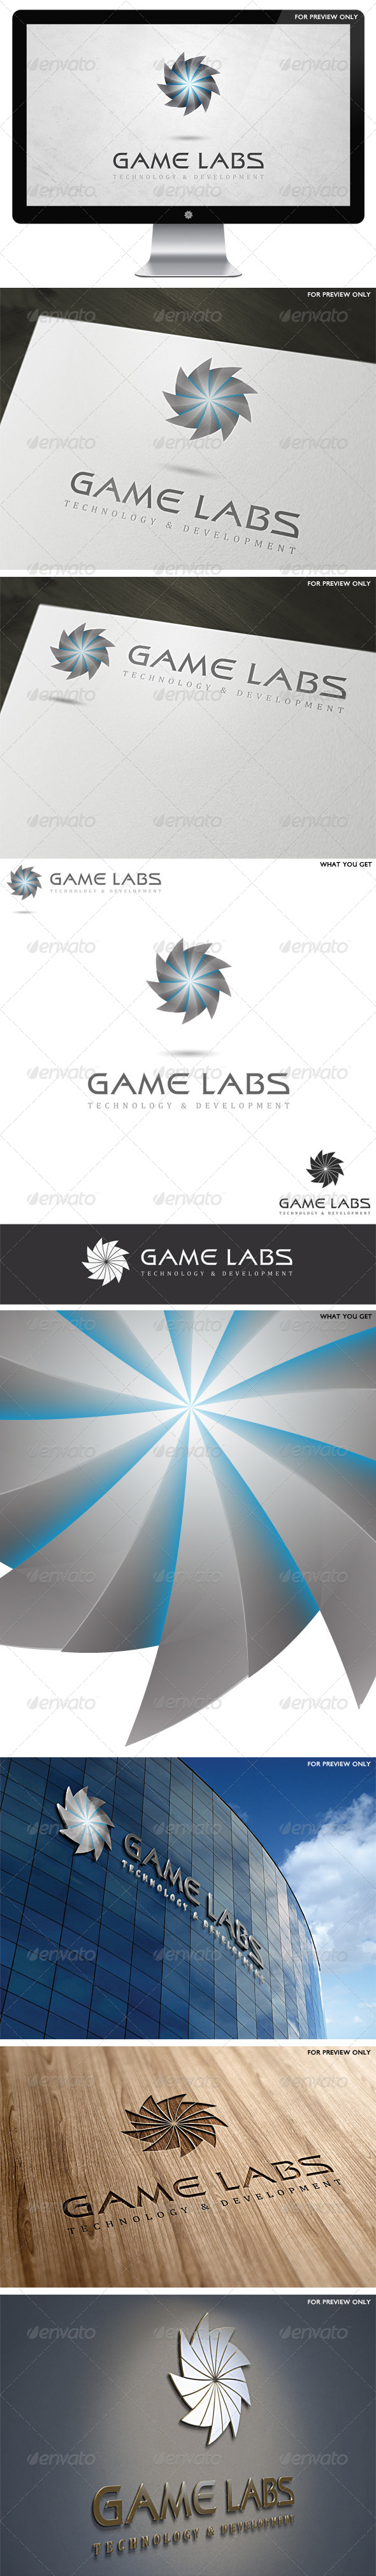 GraphicRiver 3D Game Labs Logo Template v1 4522012